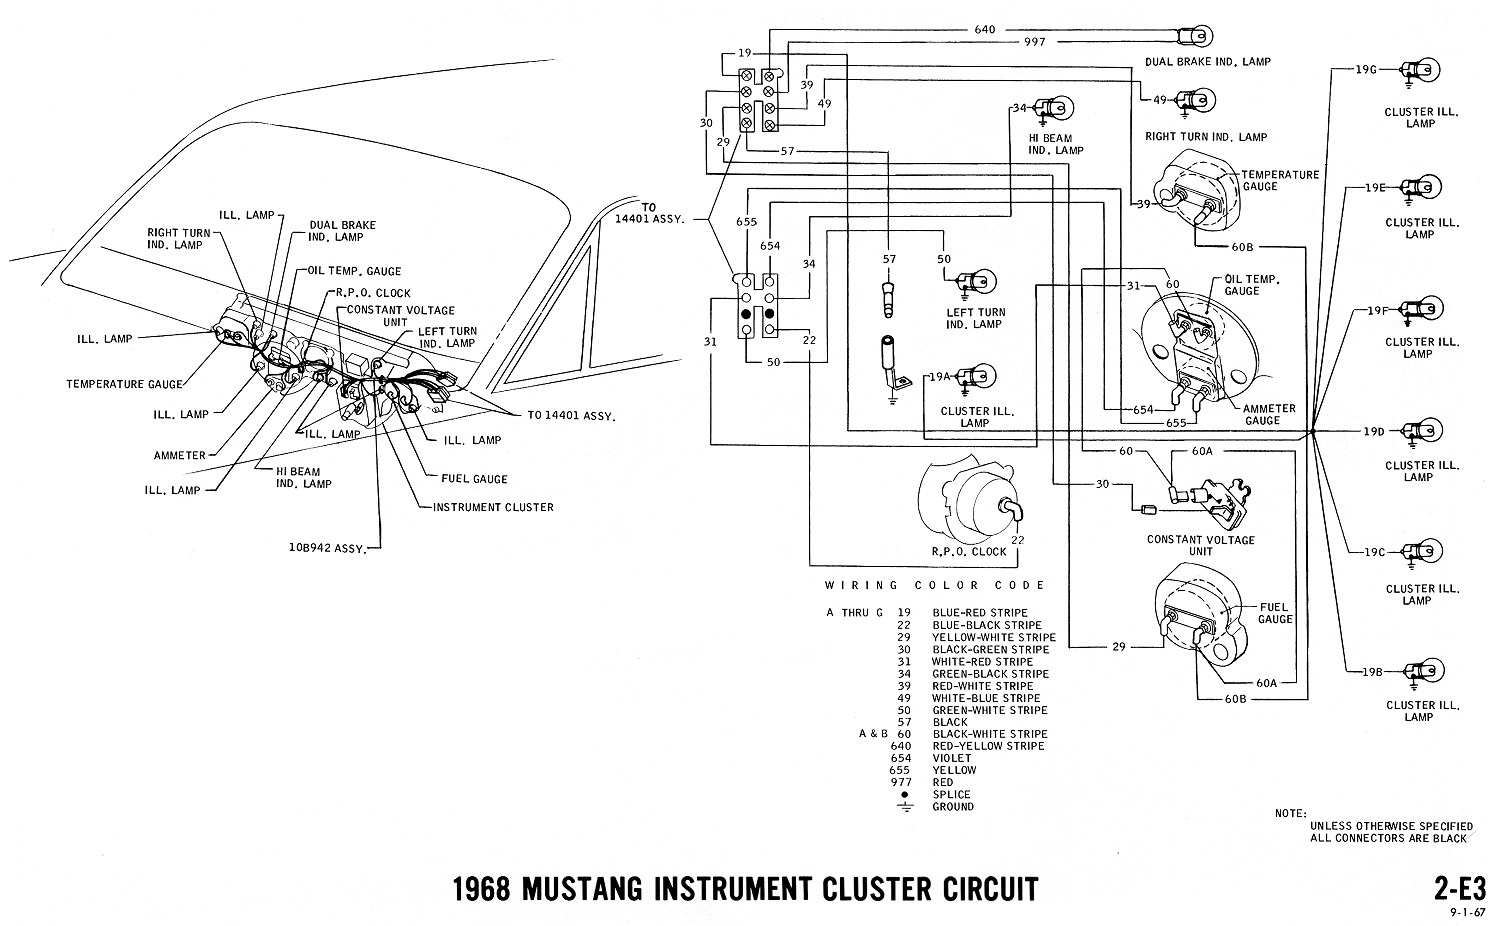 1964 Ford Falcon Alternator Wiring Diagram in addition 1964 Ford Falcon Alternator Wiring Diagram as well 1966 Ford Ranchero Wiring Diagram additionally 63 Ford Ranchero Ignition Diagram besides 57 Ford Wagon Parts. on 63 ford ranchero ignition diagram